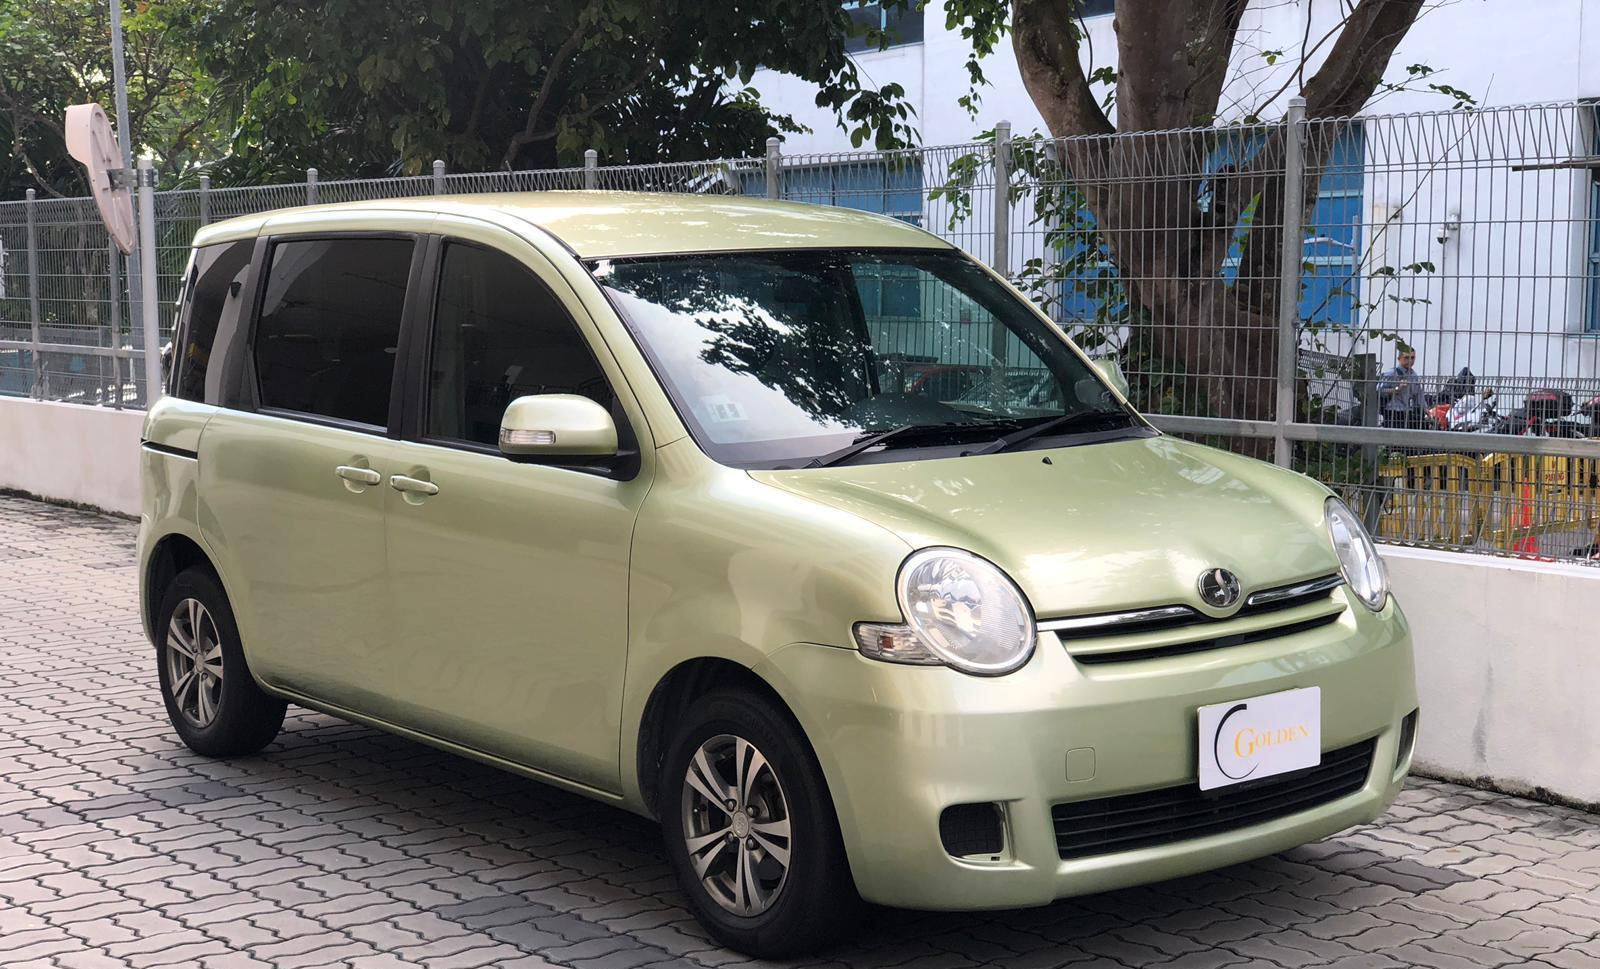 Toyota Sienta RENT CHEAPEST RENTAL PROMO FOR Grab/Ryde/Personal USE RENTING OUT